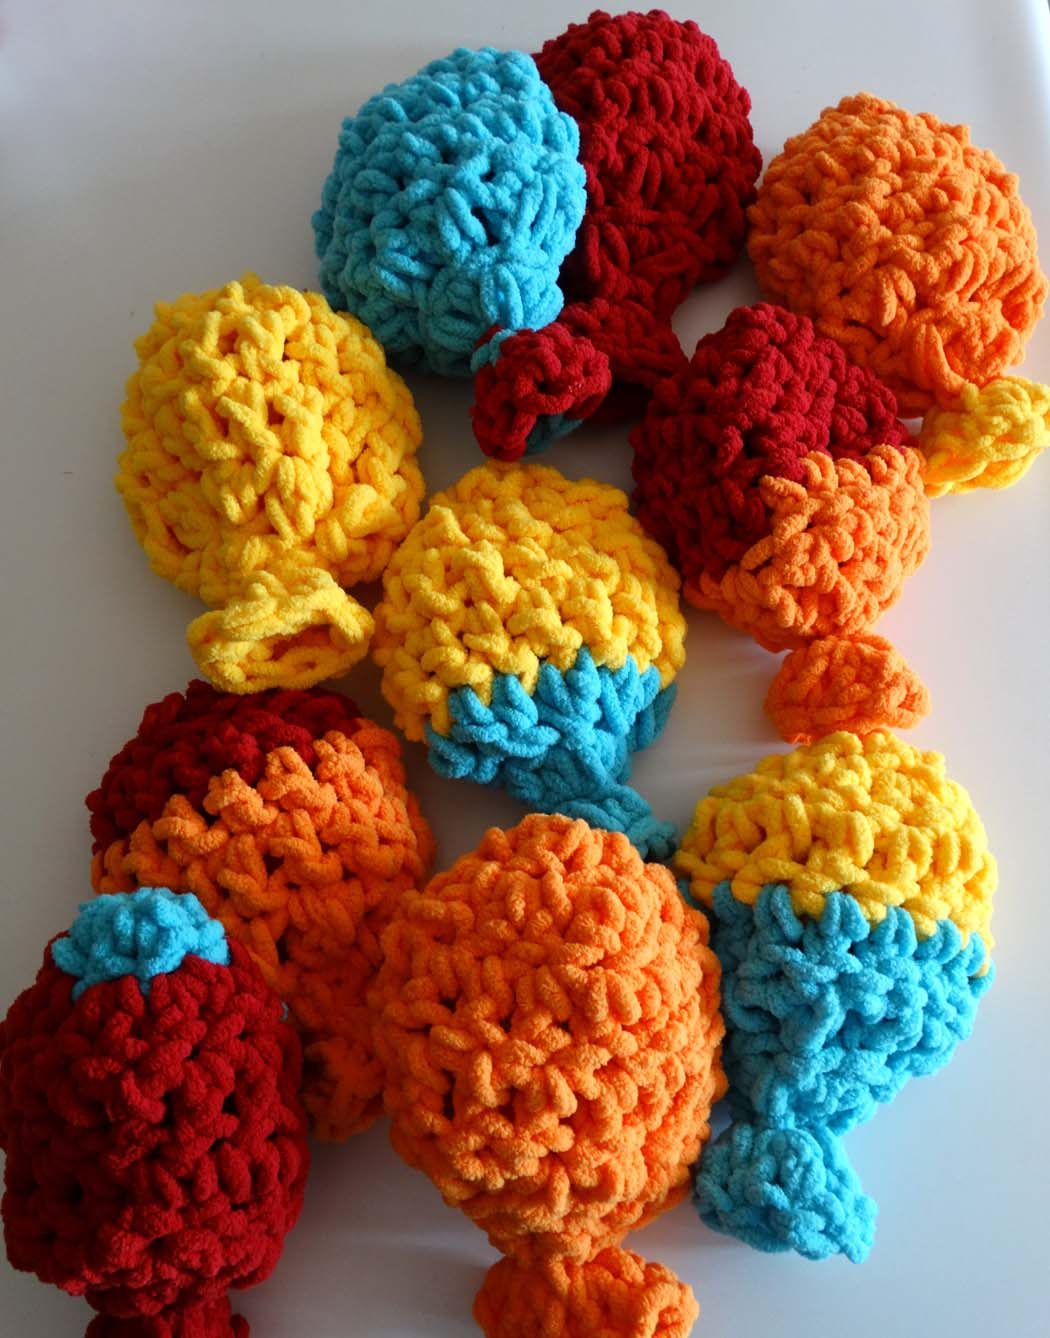 Crochet Pattern Water Balloon : Reusable Crochet Water Balloons Set of 6 - Jaded Spade ...